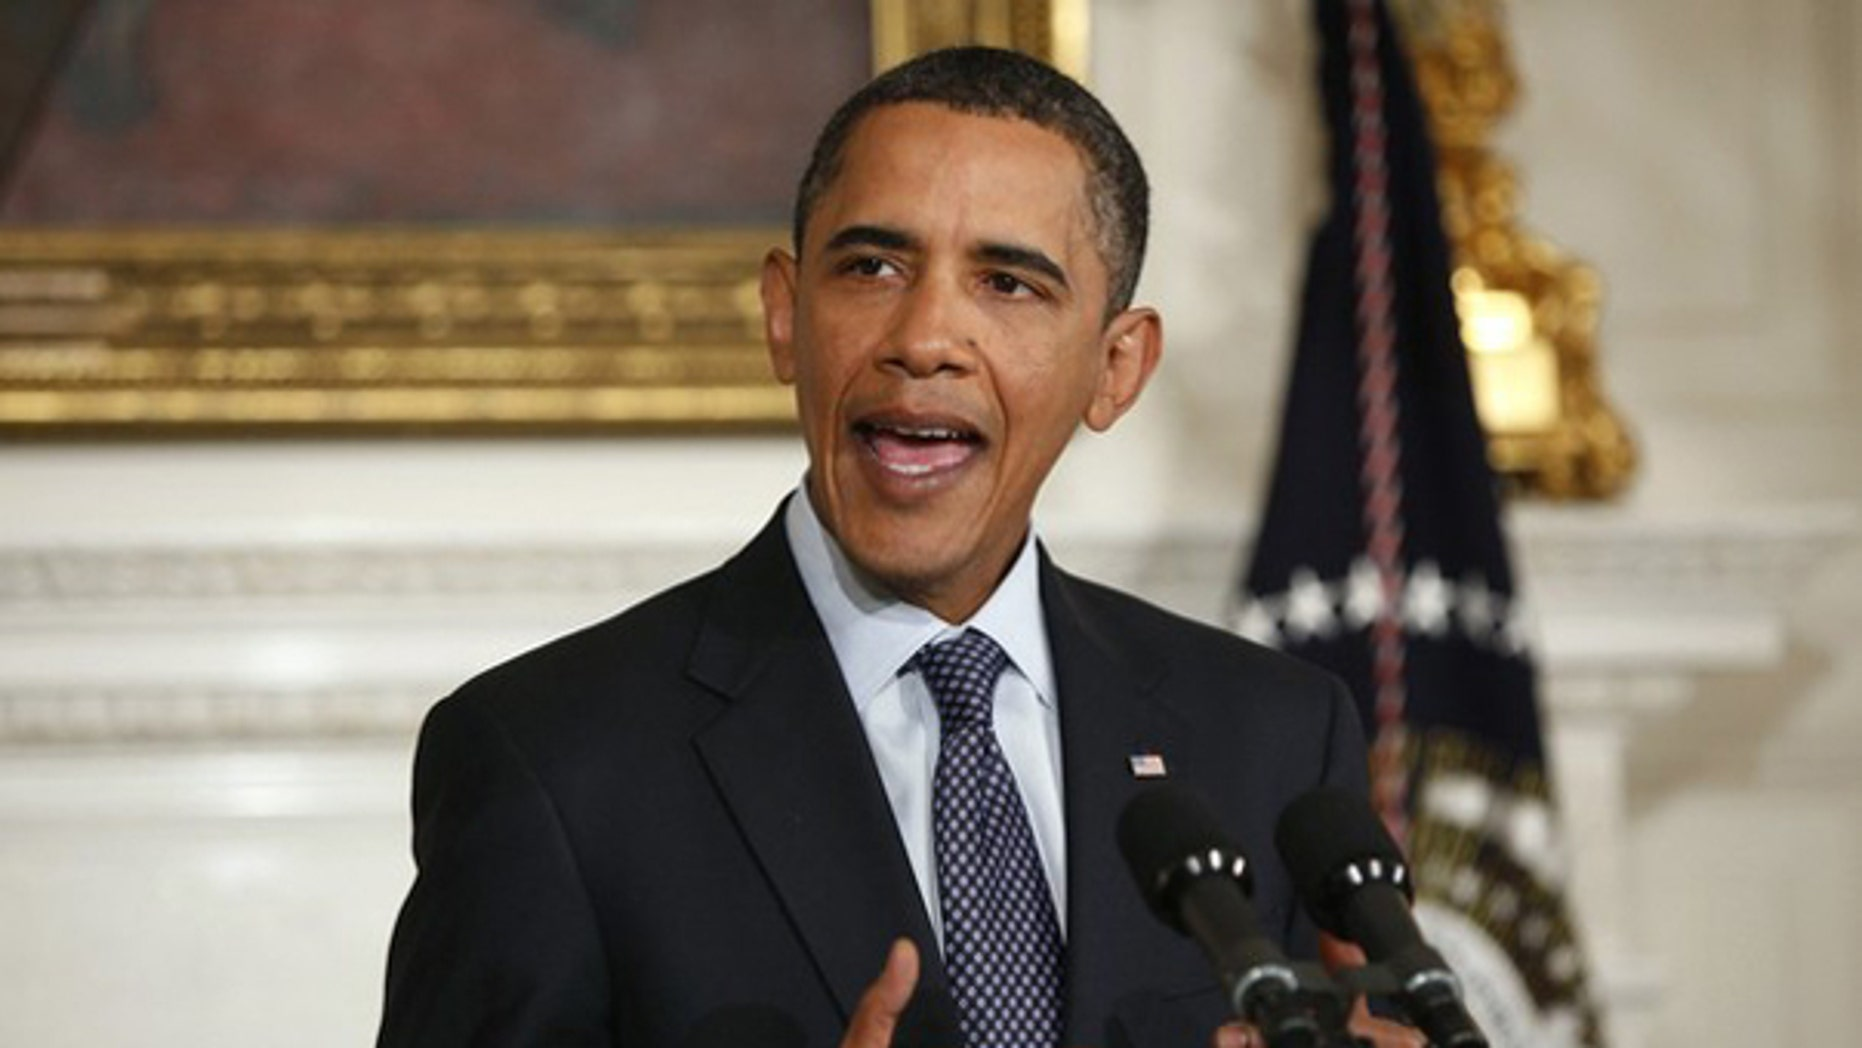 President Obama talks to reporters at the White House Jan. 7. (Reuters Photo)